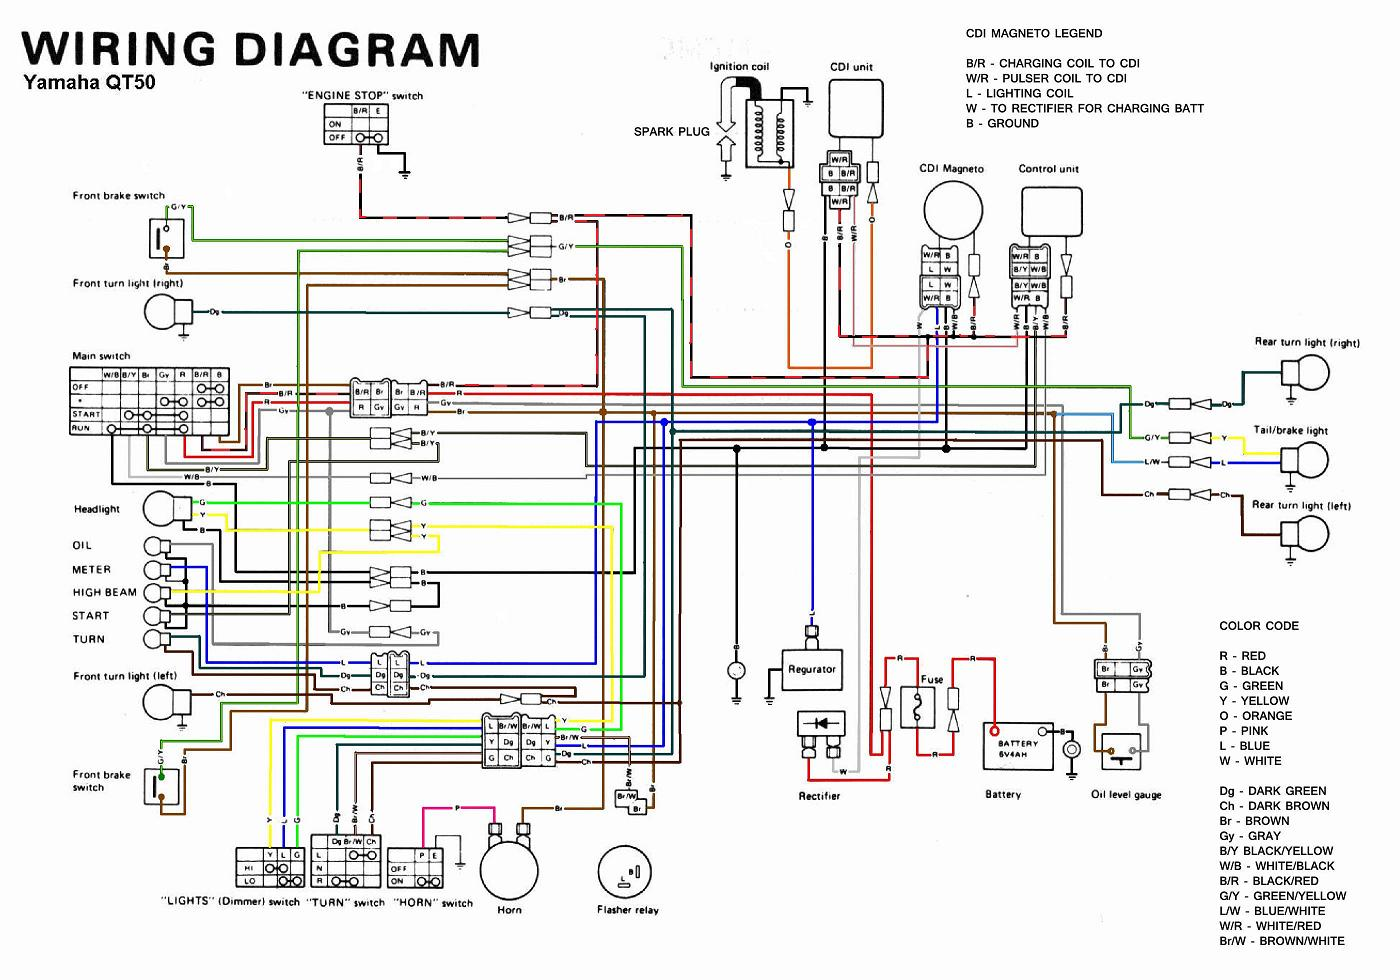 Yamaha QT50 Wiring Diagram yamaha qt50 wiring diagram yamaha qt50 luvin and other nopeds wiring diagram for dummies at couponss.co